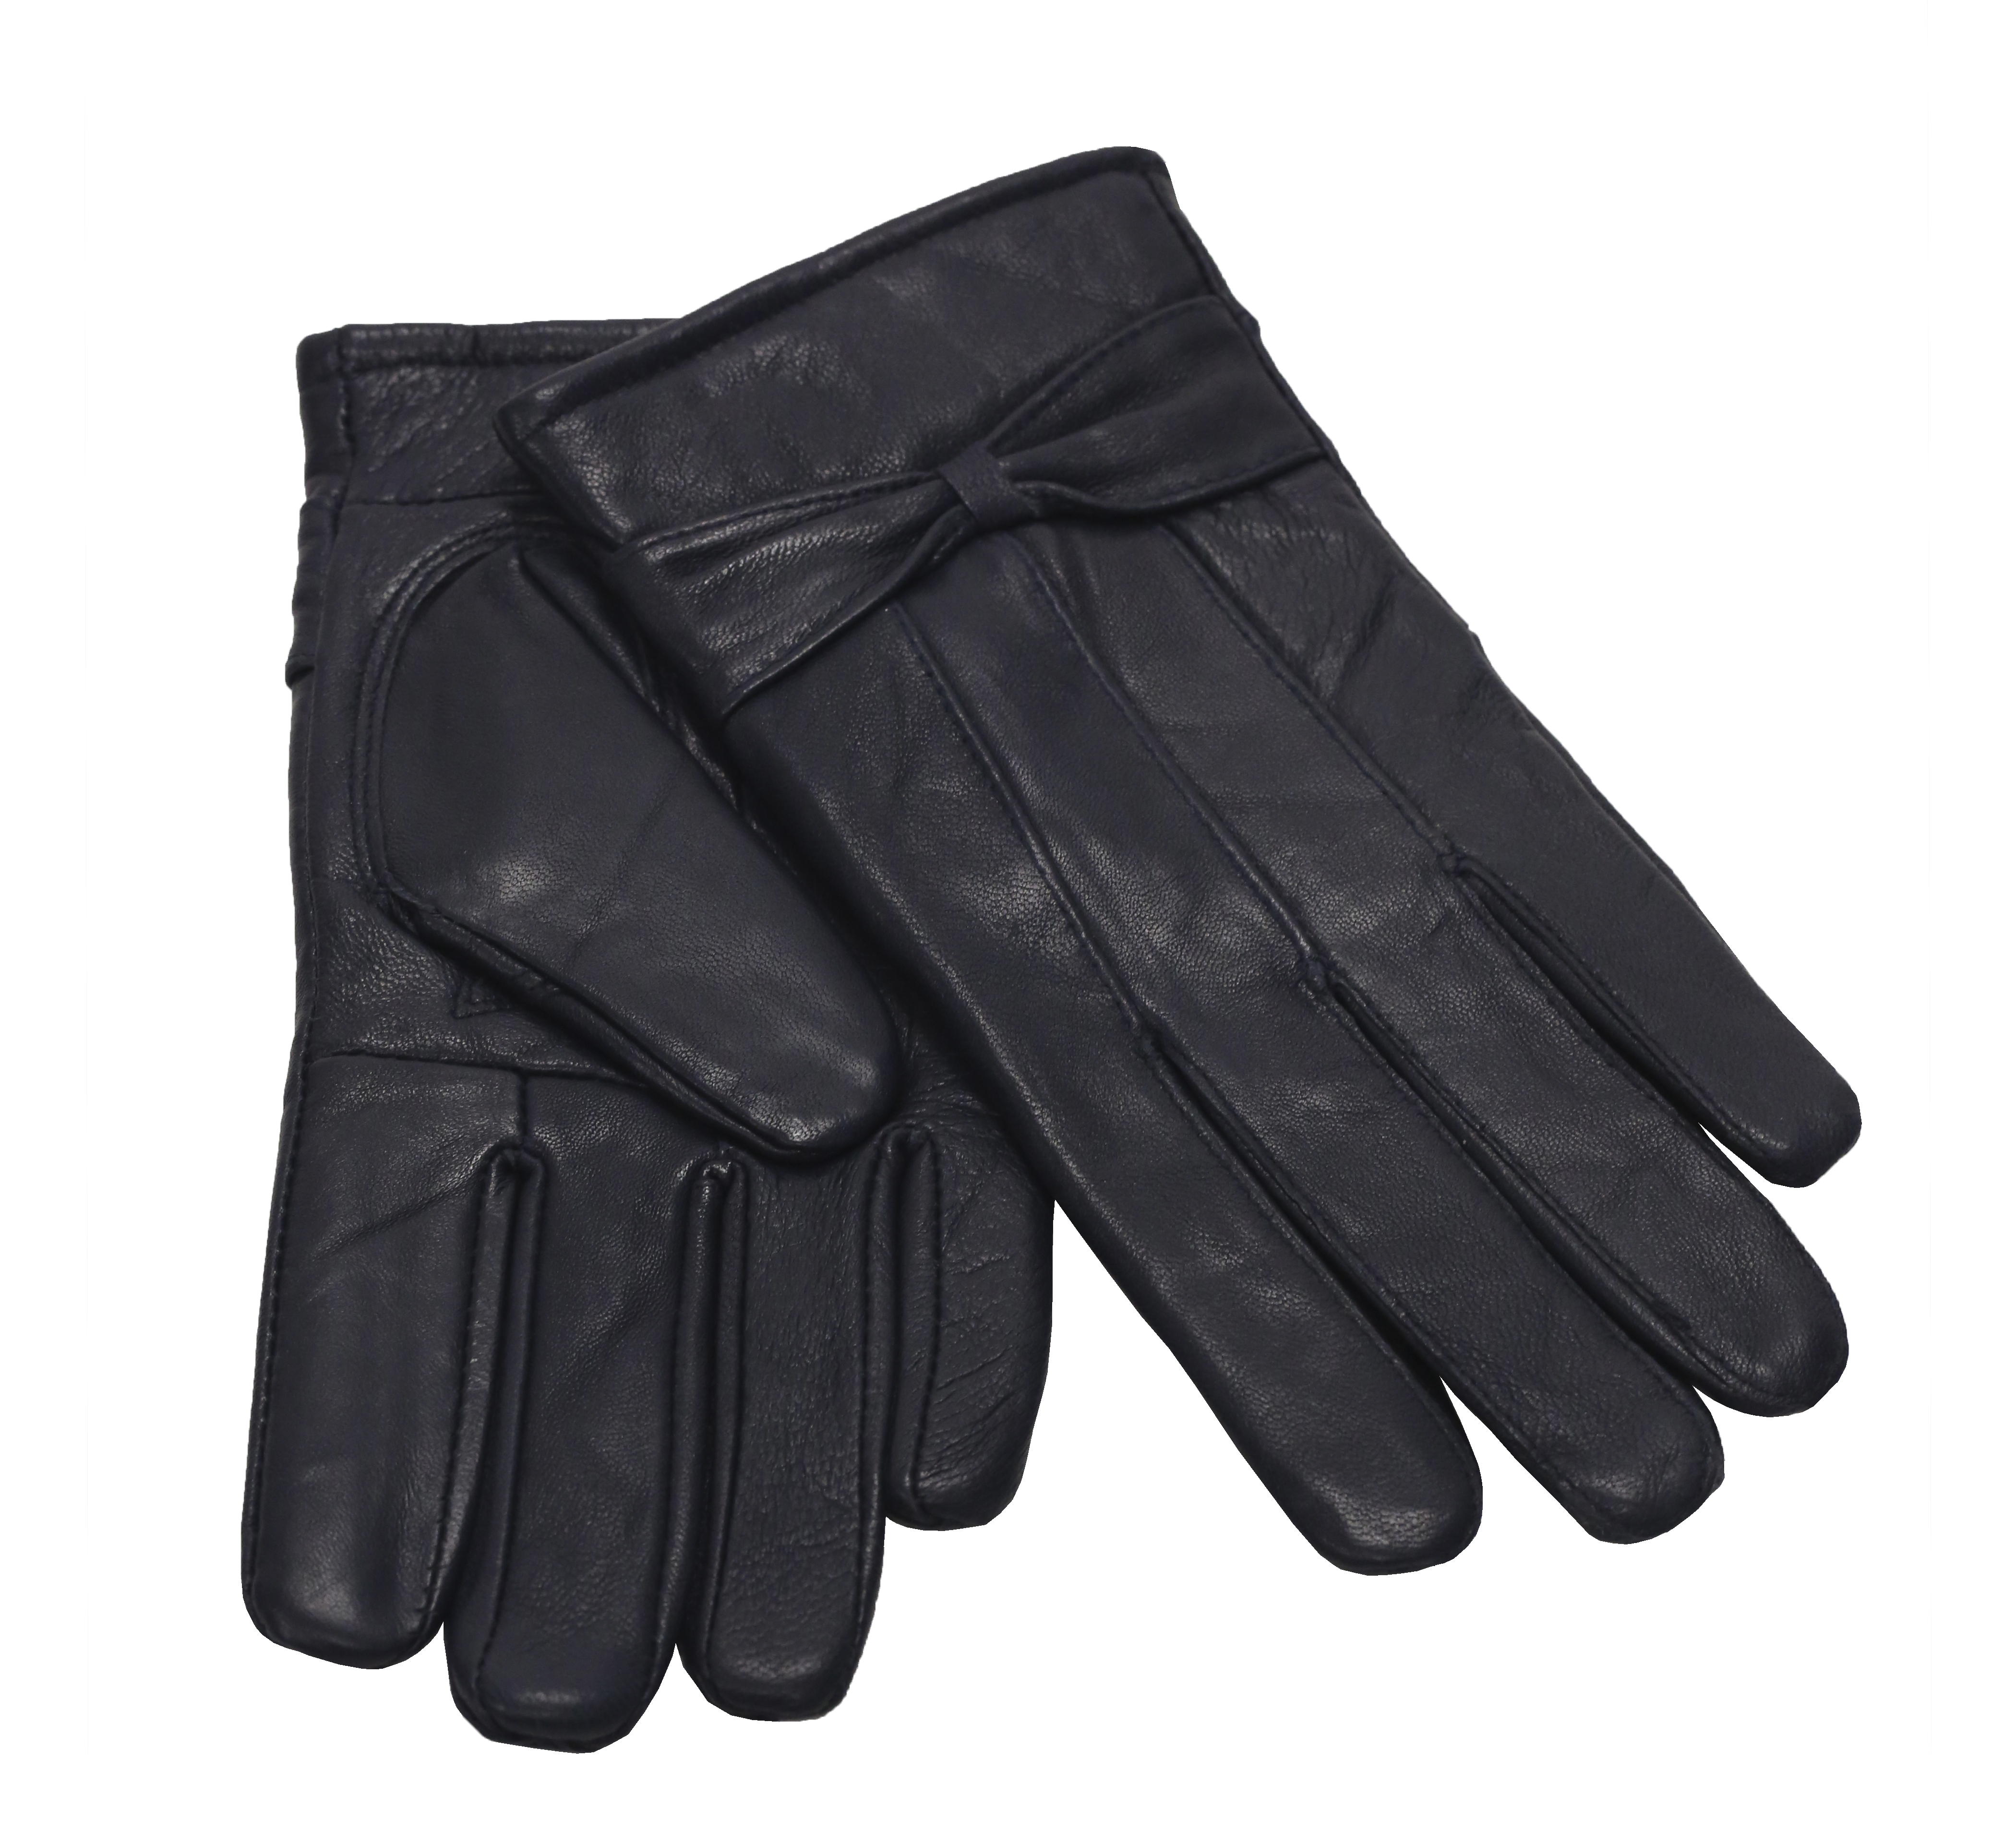 MoDA Ms Barcelona Womens Genuine Leather Assorted Colors Cold Weather Gloves with Bow C0101 Graphite